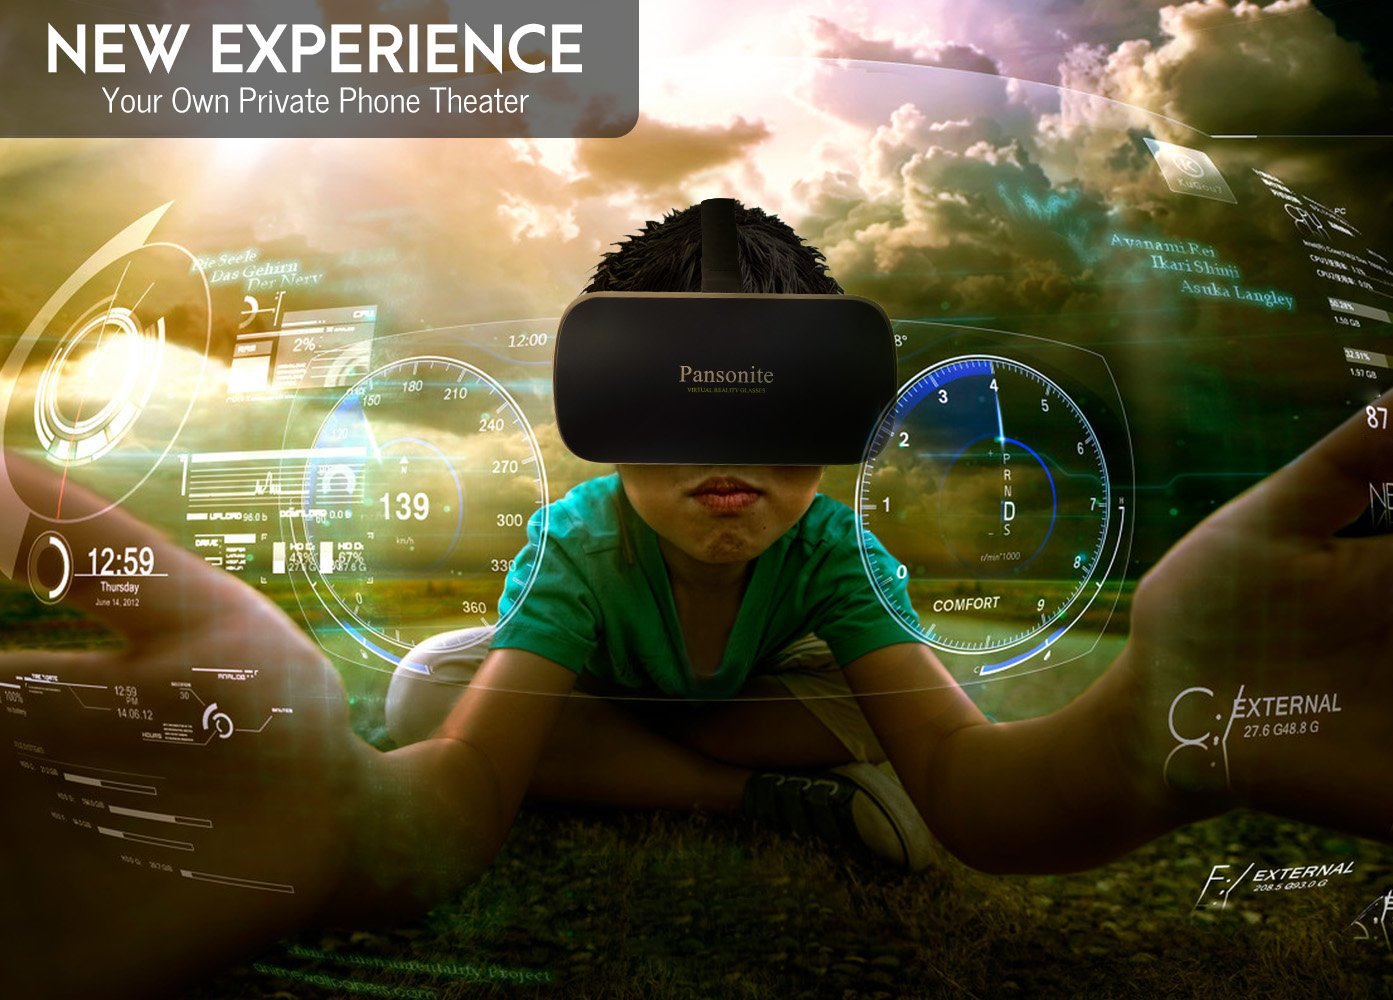 Pansonite 3D VR Glasses Virtual Reality Headset for Games & 3D Movies, Upgraded & Lightweight with Adjustable Pupil and Object Distance for IOS and Android Smartphone by Pansonite (Image #8)